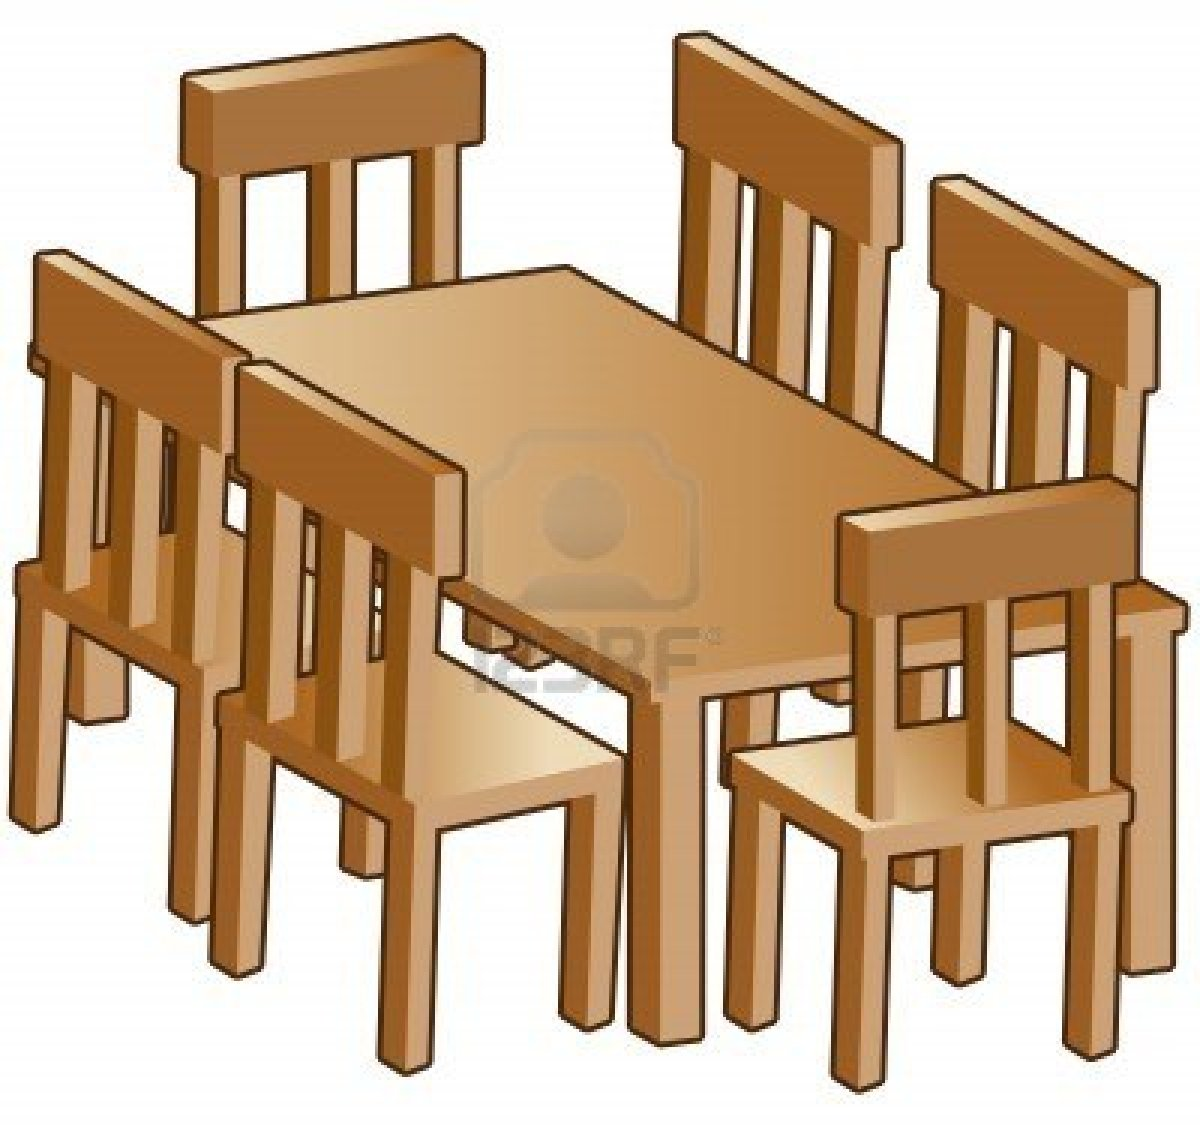 Dining Room Furniture Images Furniture Clip Art For Floor Plans Free Clipart Panda